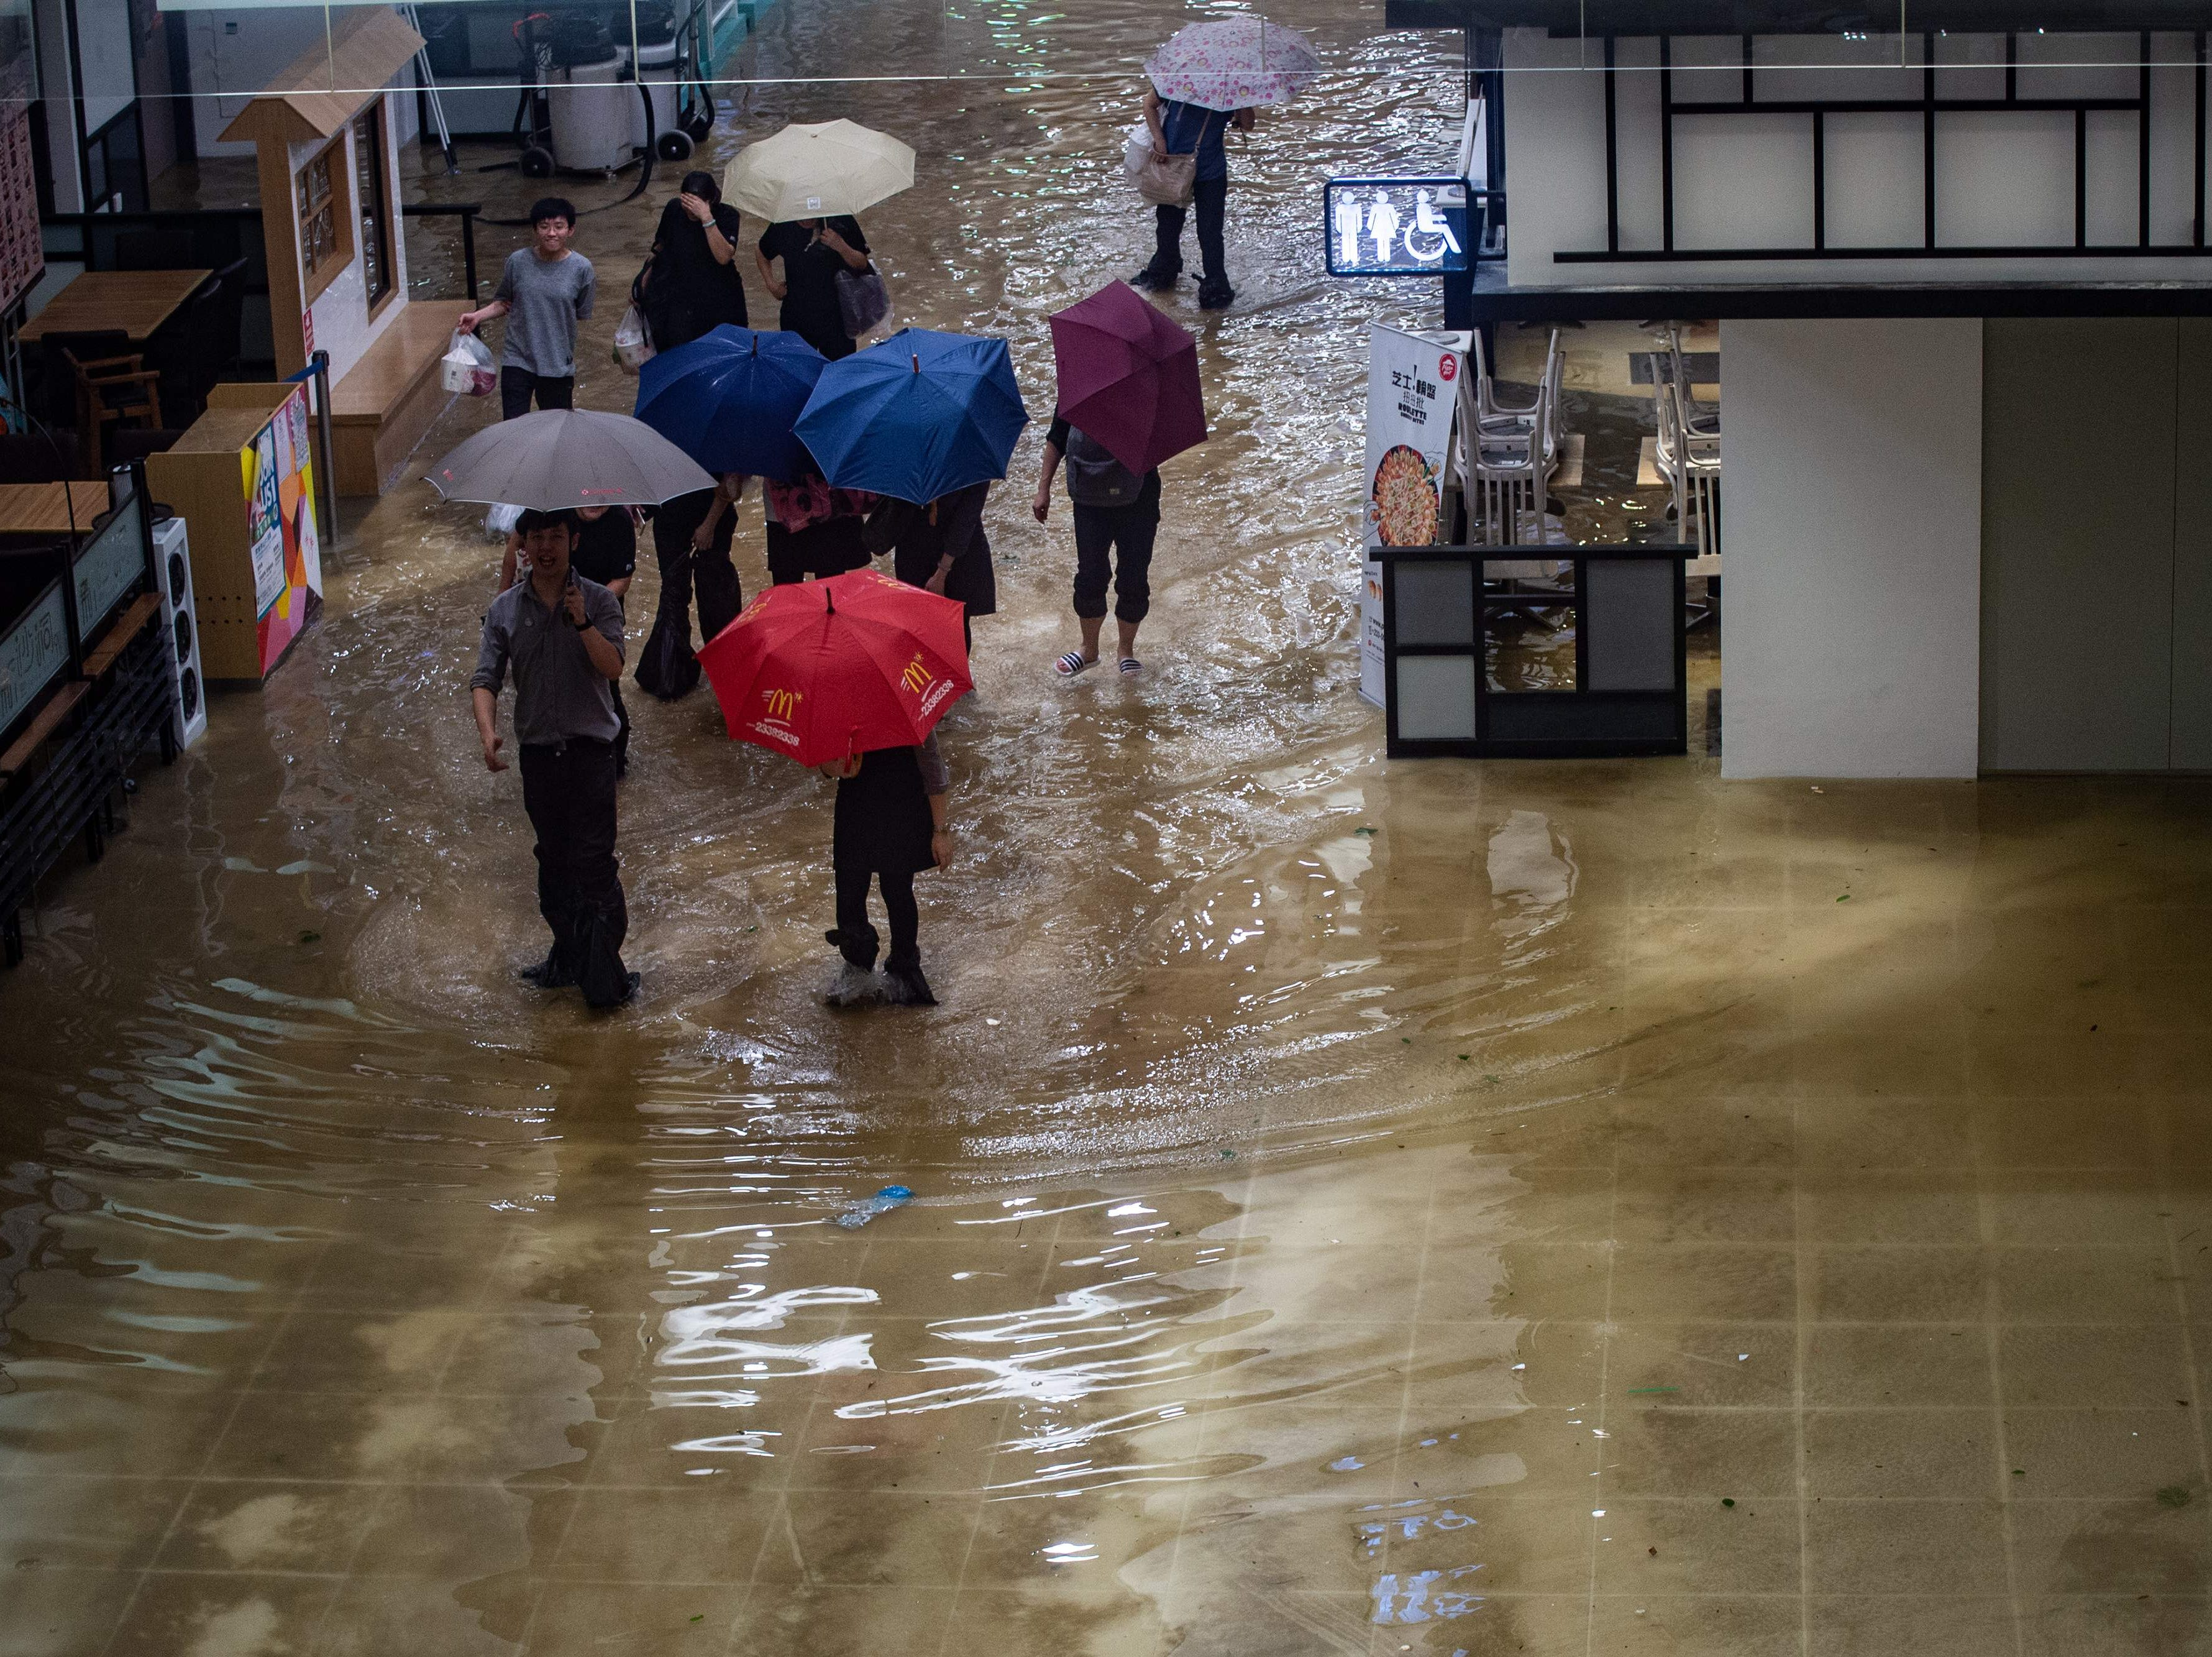 People walk through a flooded shopping mall in Heng Fa Chuen district during Super Typhoon Mangkhut in Hong Kong on Sept. 16, 2018.